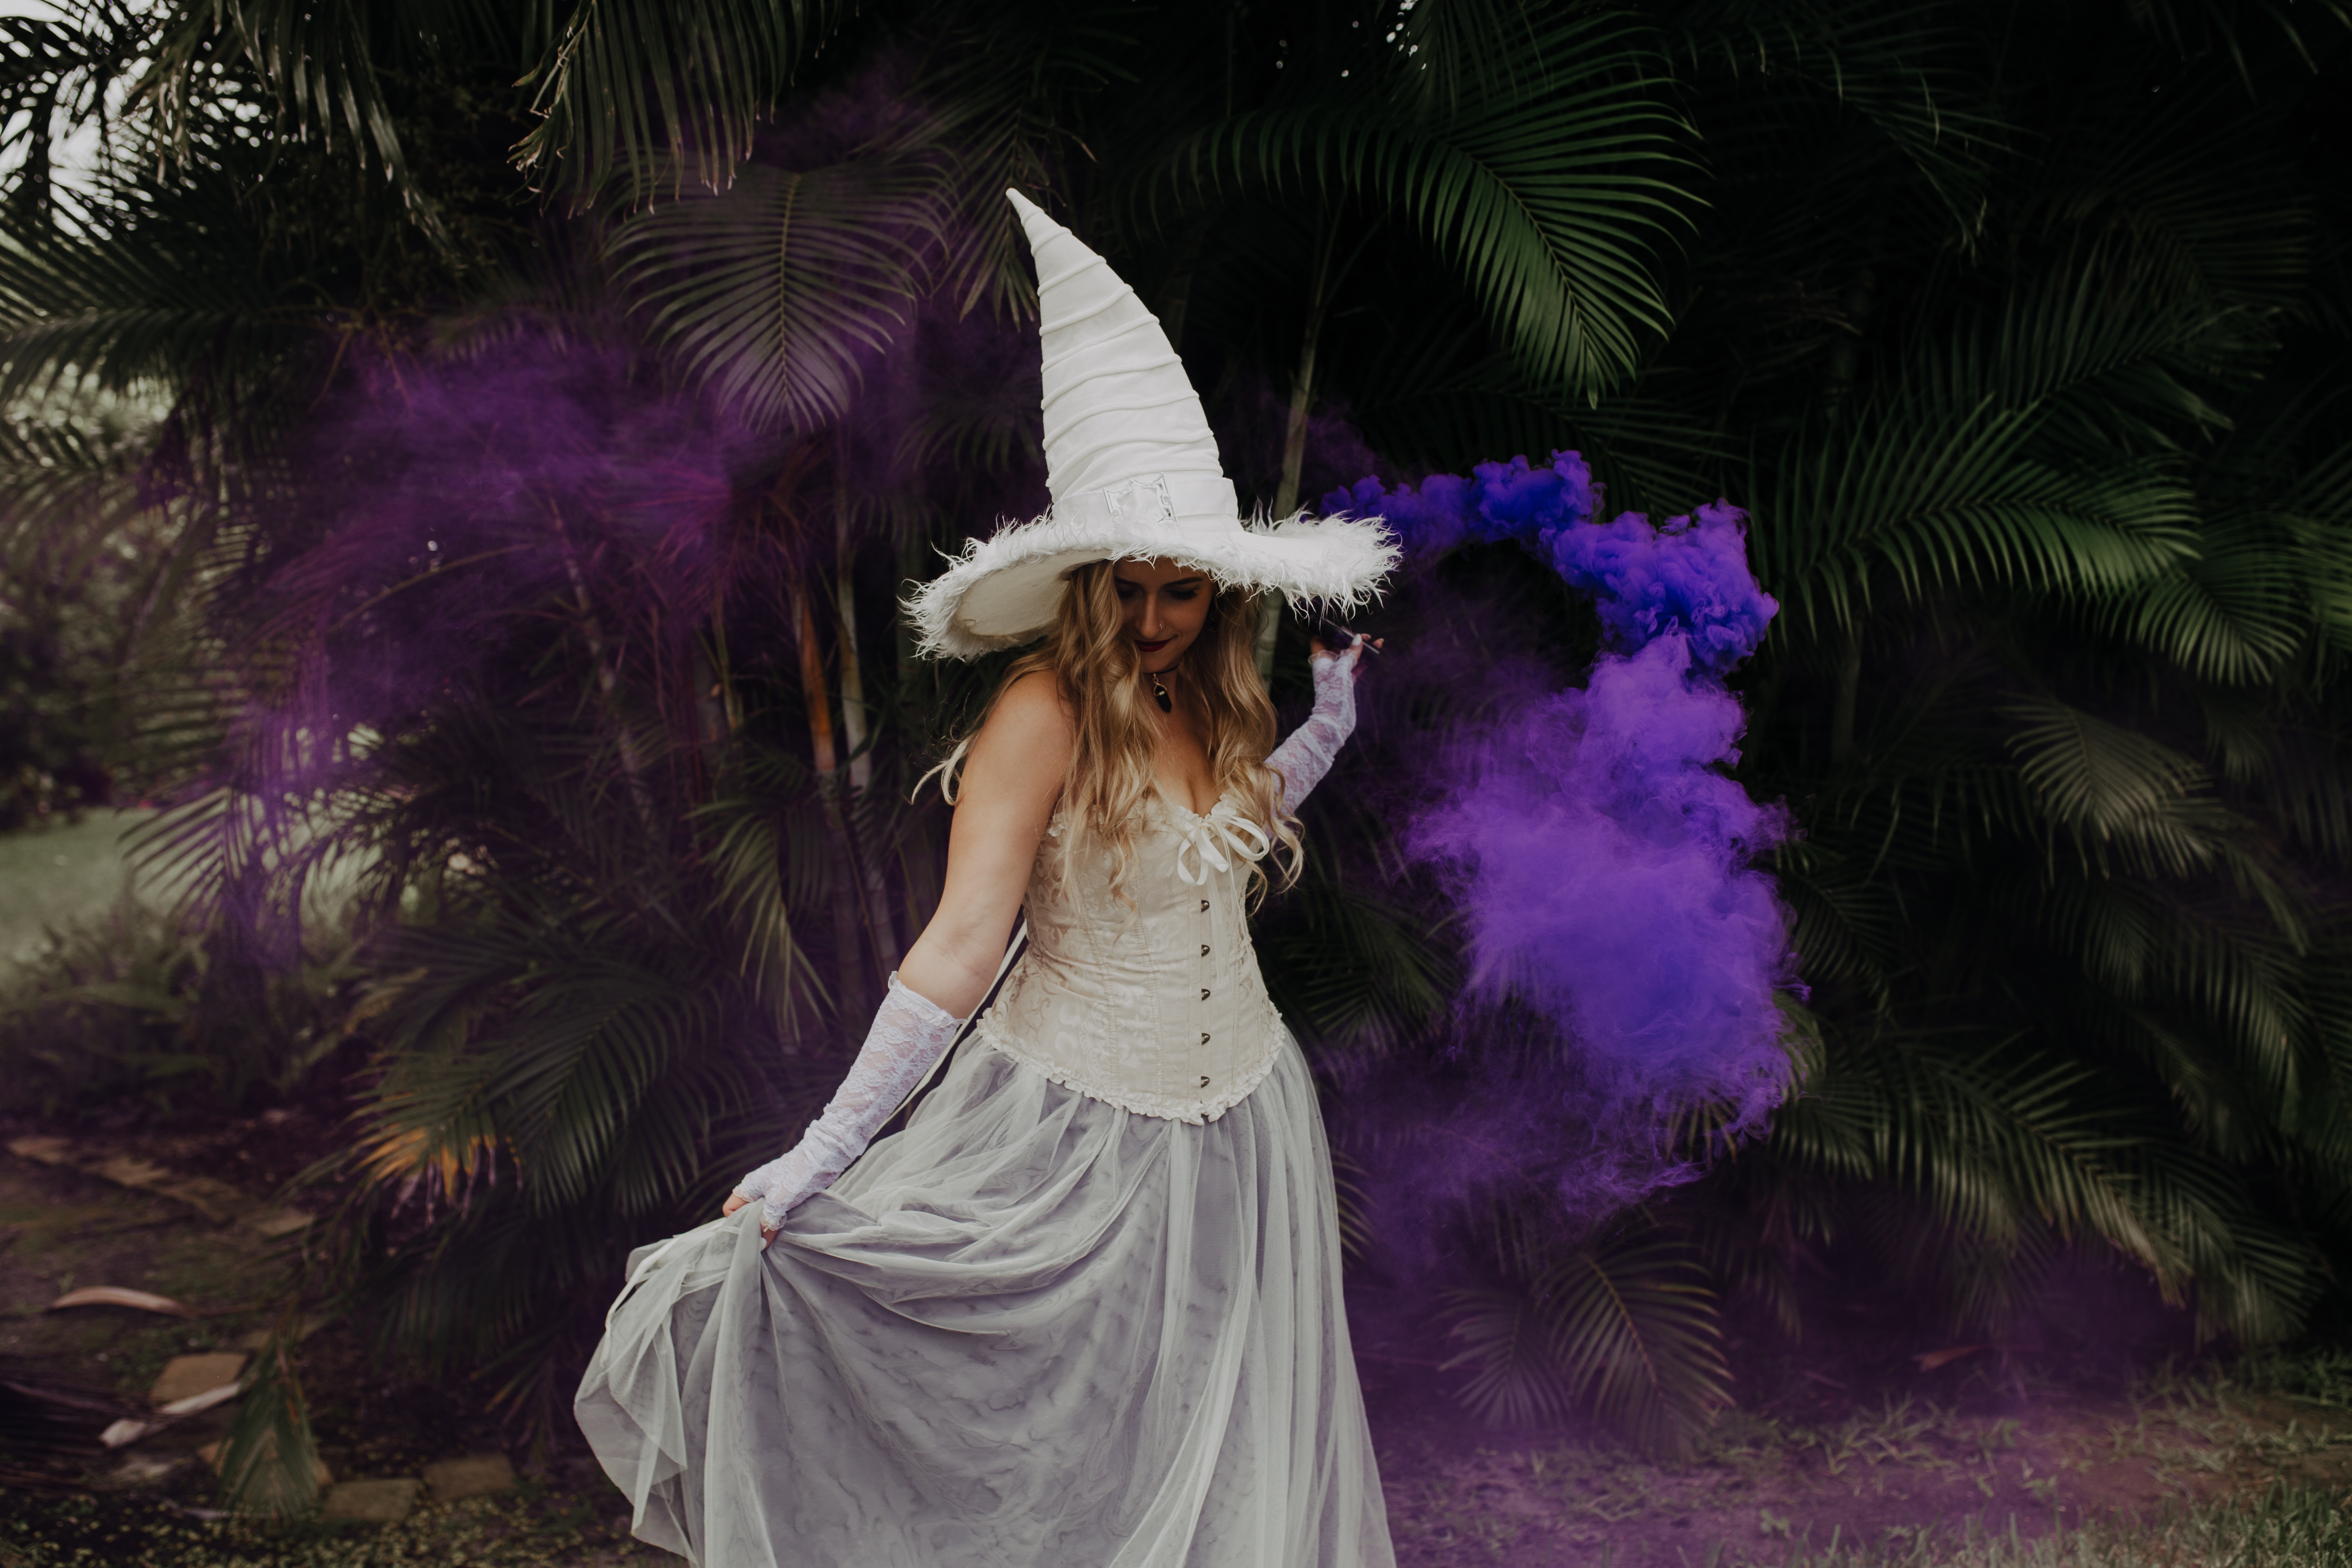 witch bride dances around outside with purple smoke bomb and long flowy tulle dress skirt from revelry